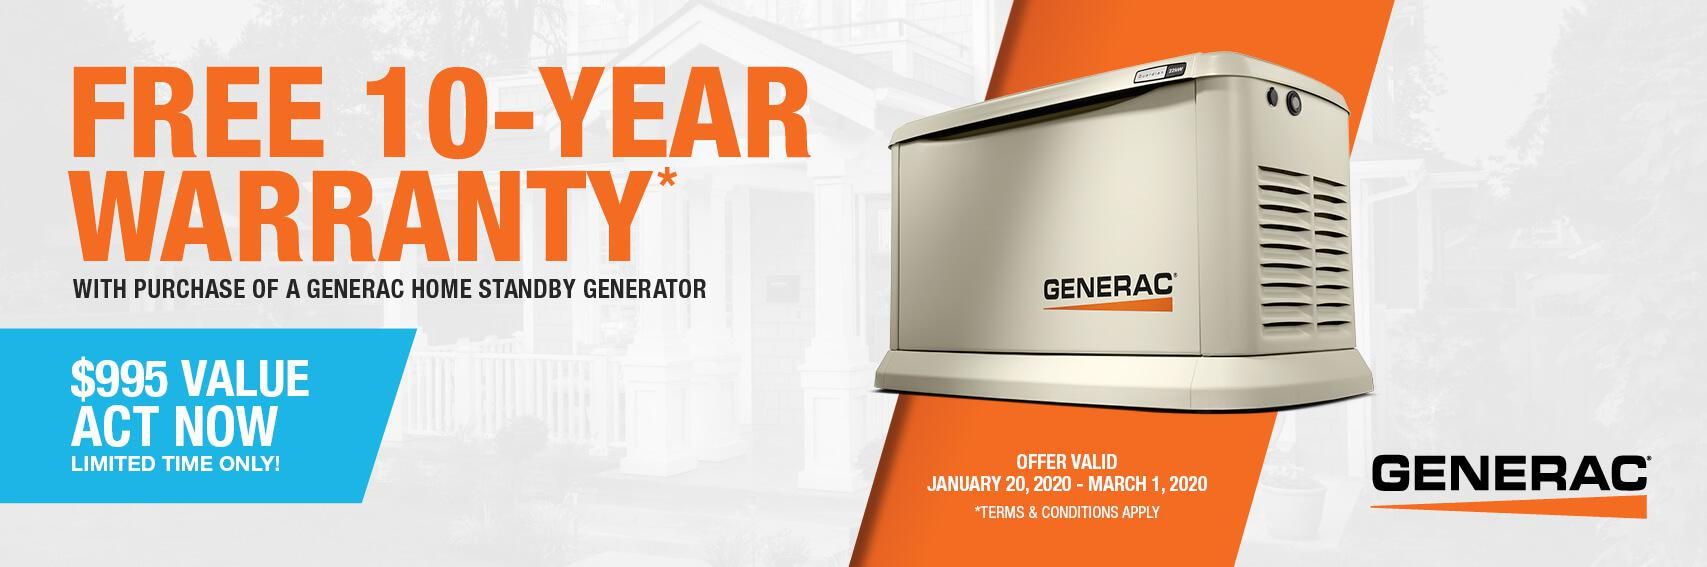 Homestandby Generator Deal | Warranty Offer | Generac Dealer | Greenwood, DE